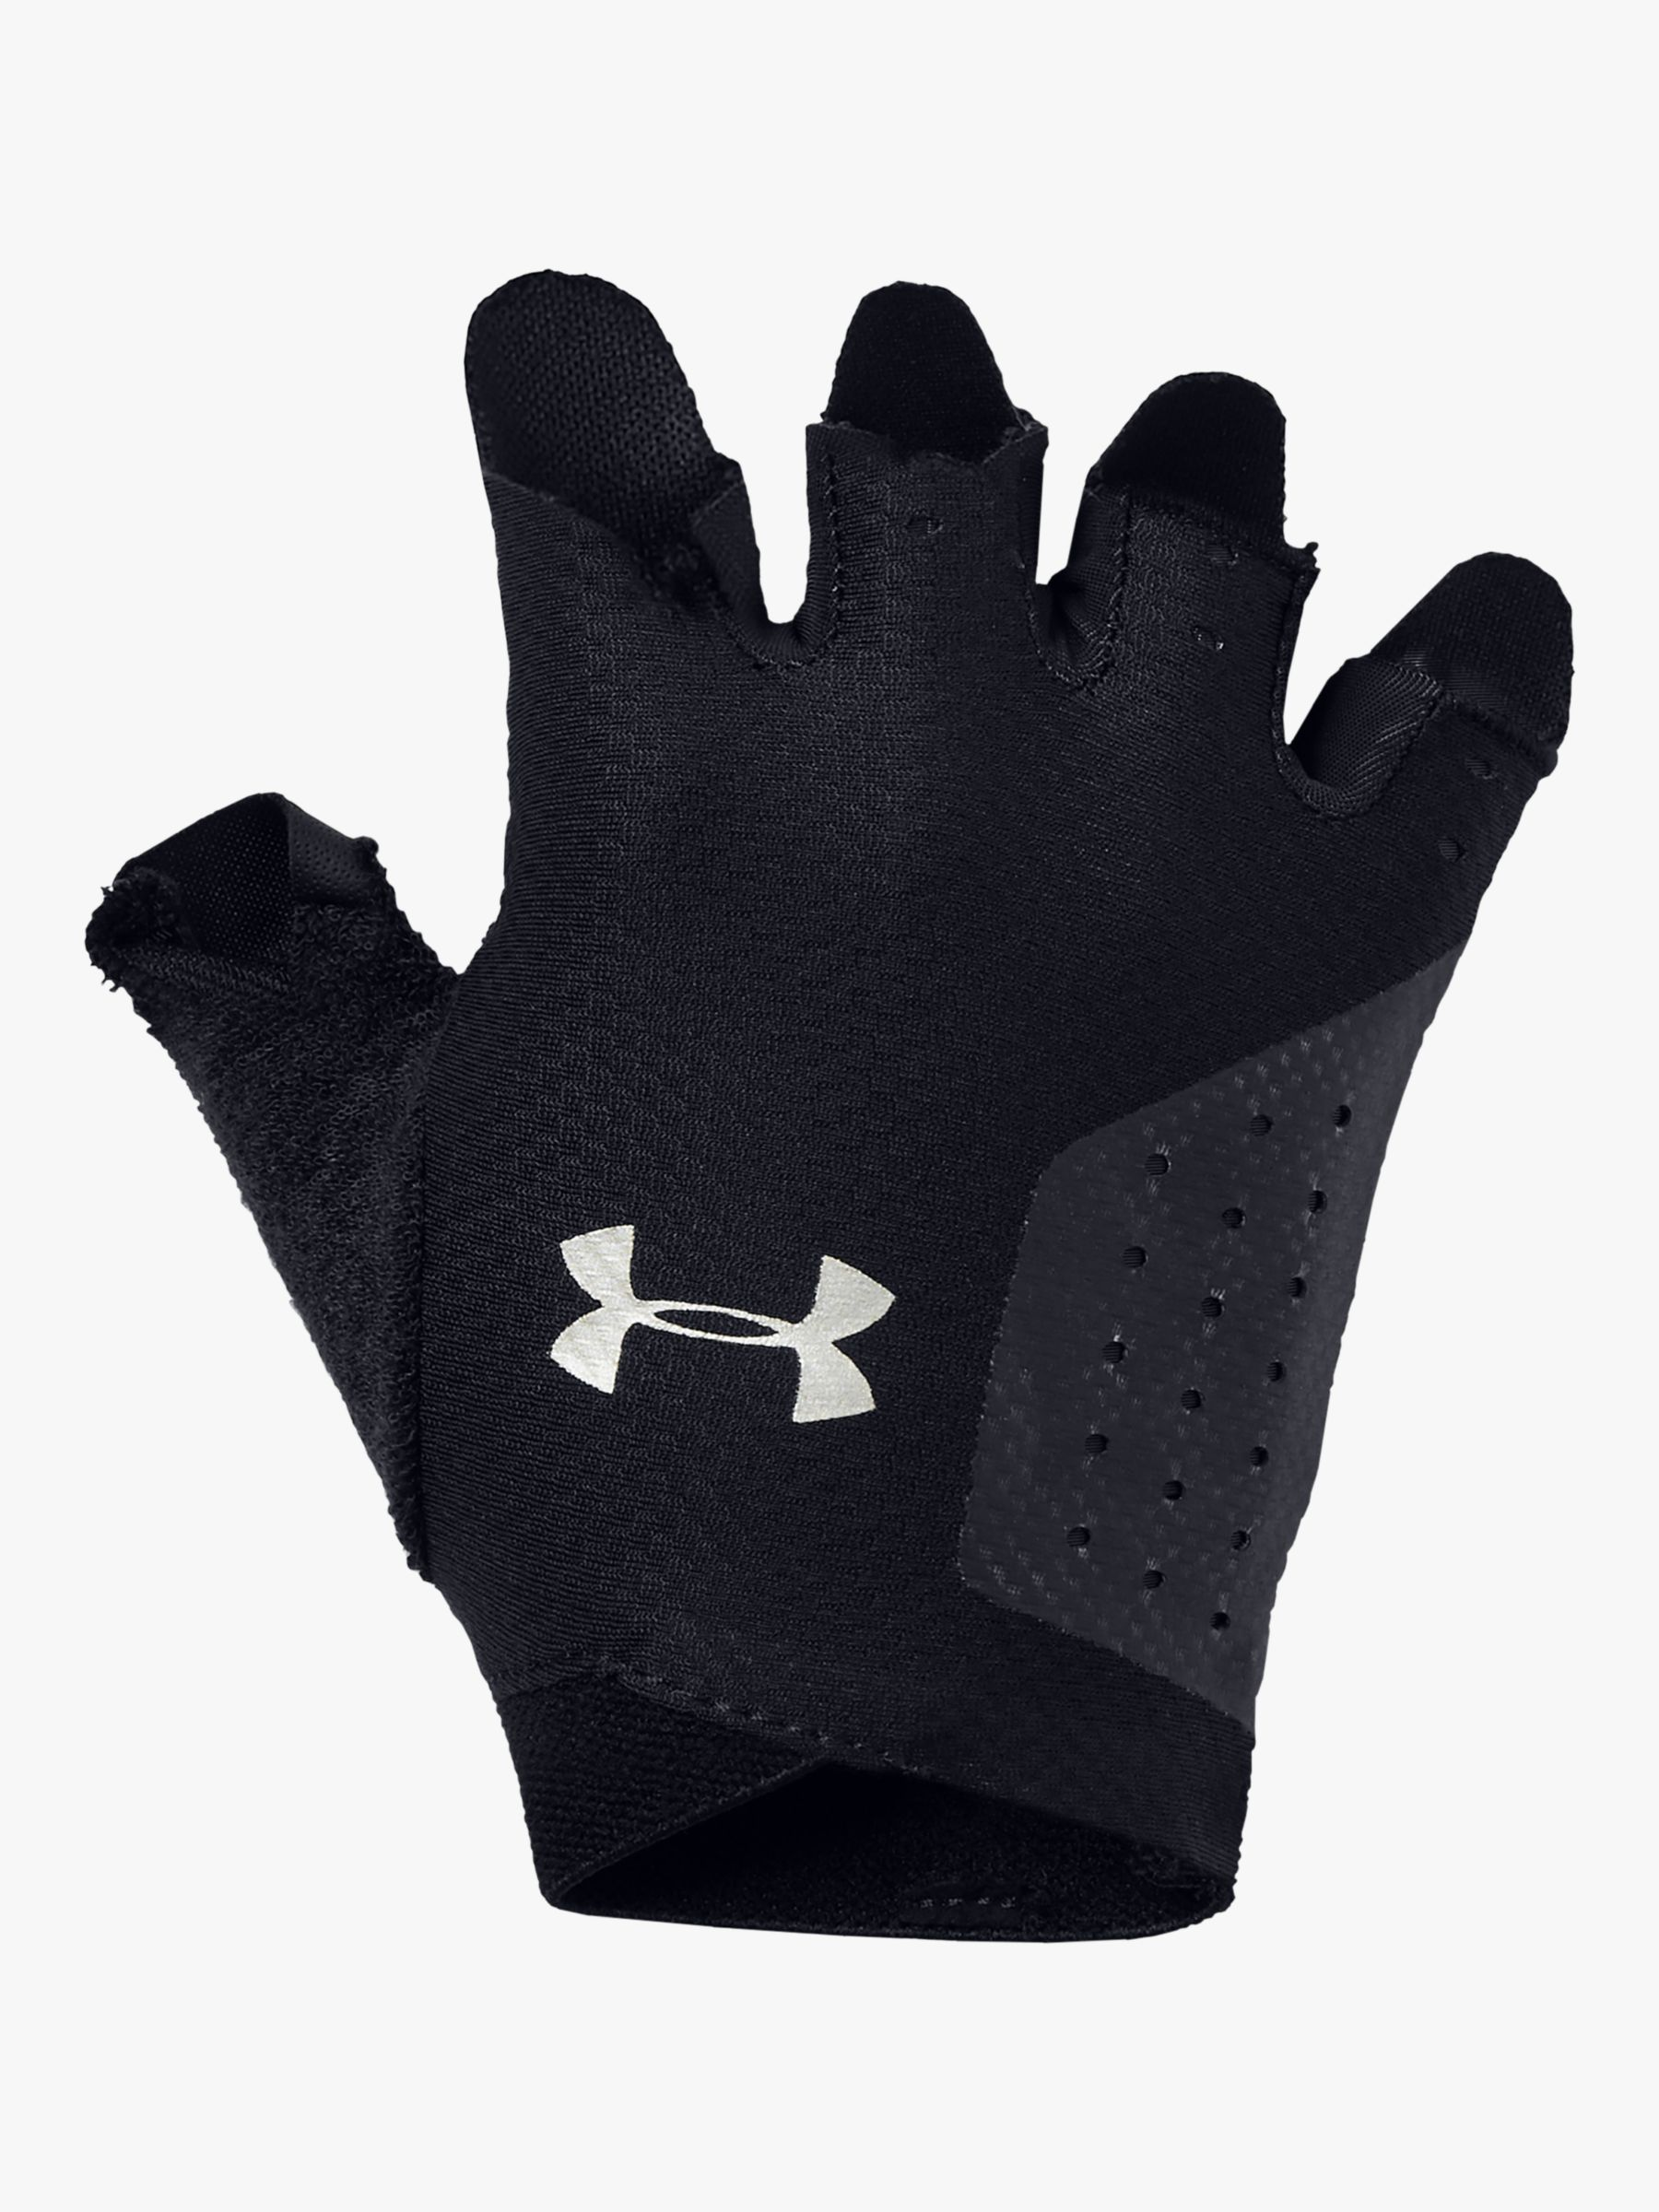 Under Armour Under Armour Women's Light Training Gloves, Black/Silver